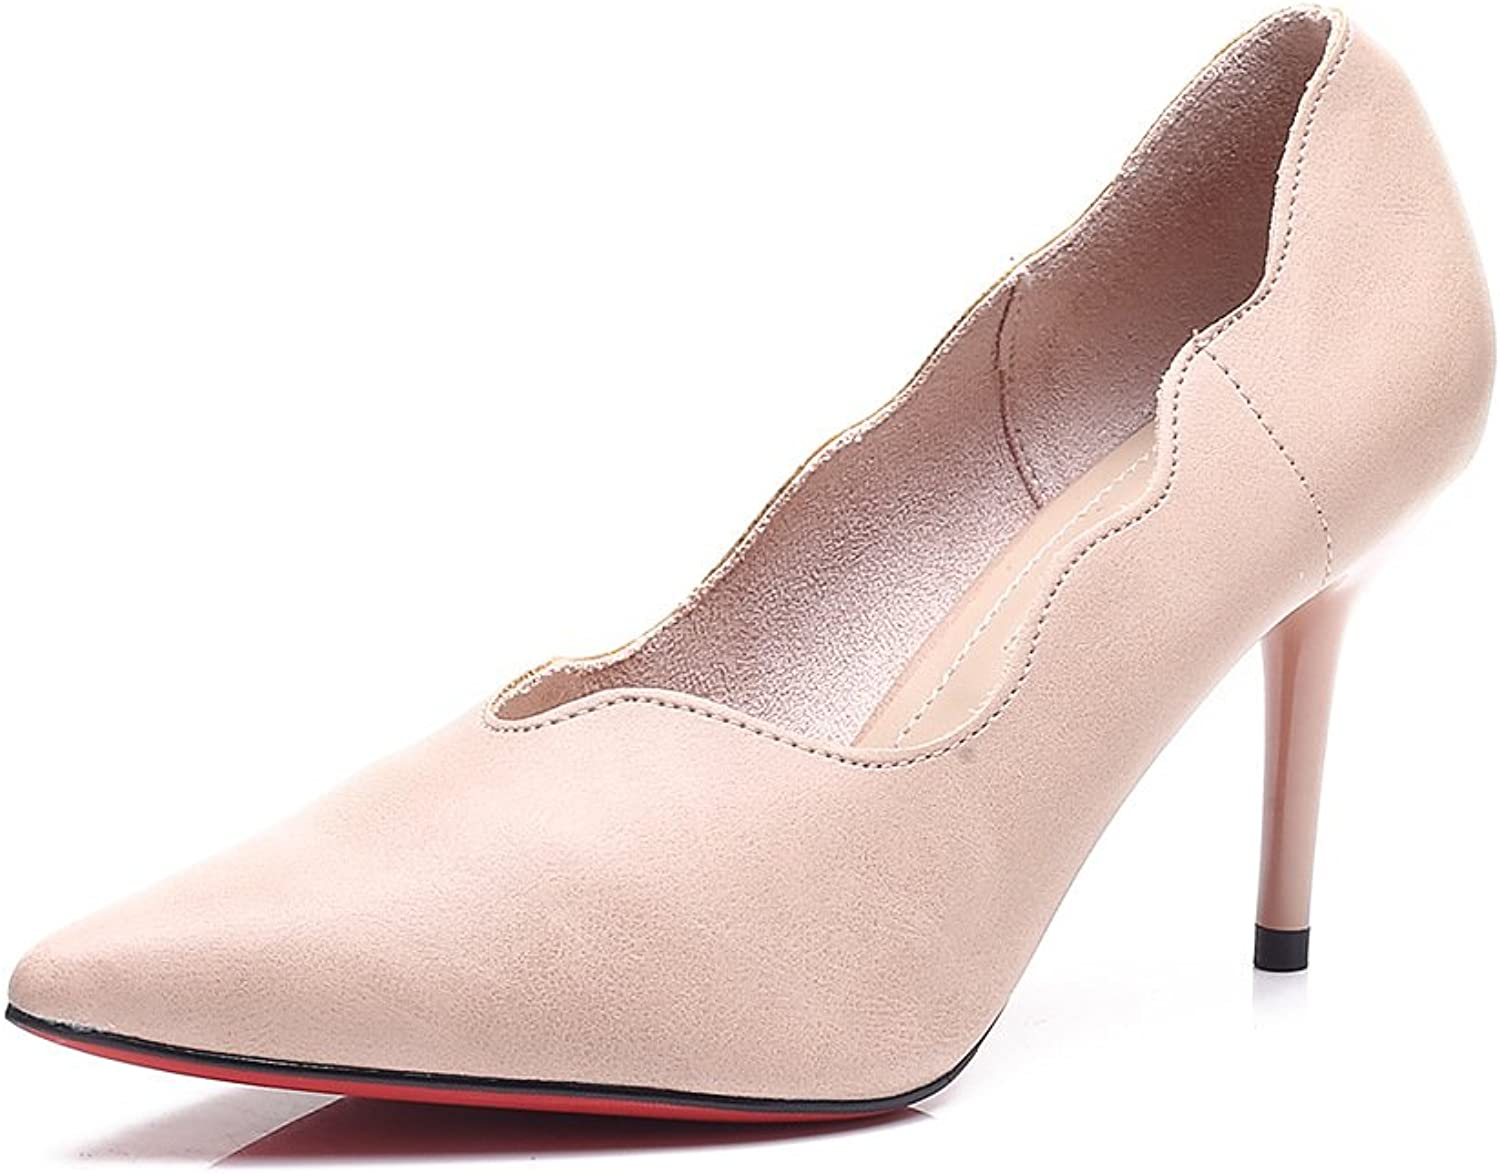 Meiren Pointed High Heels Super Female Stiletto Single shoes